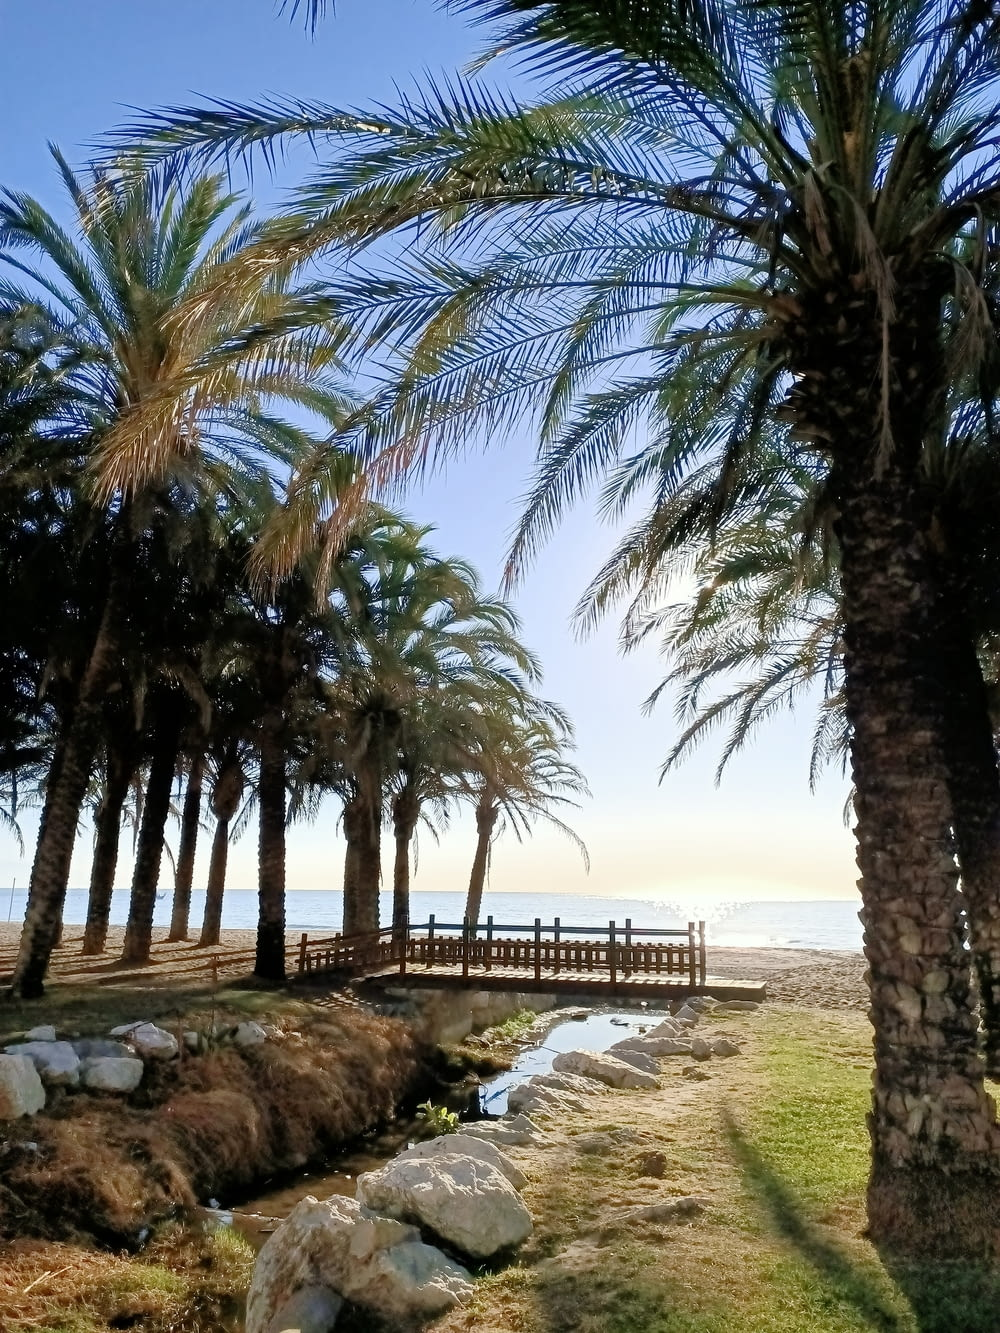 palm trees on beach shore during daytime